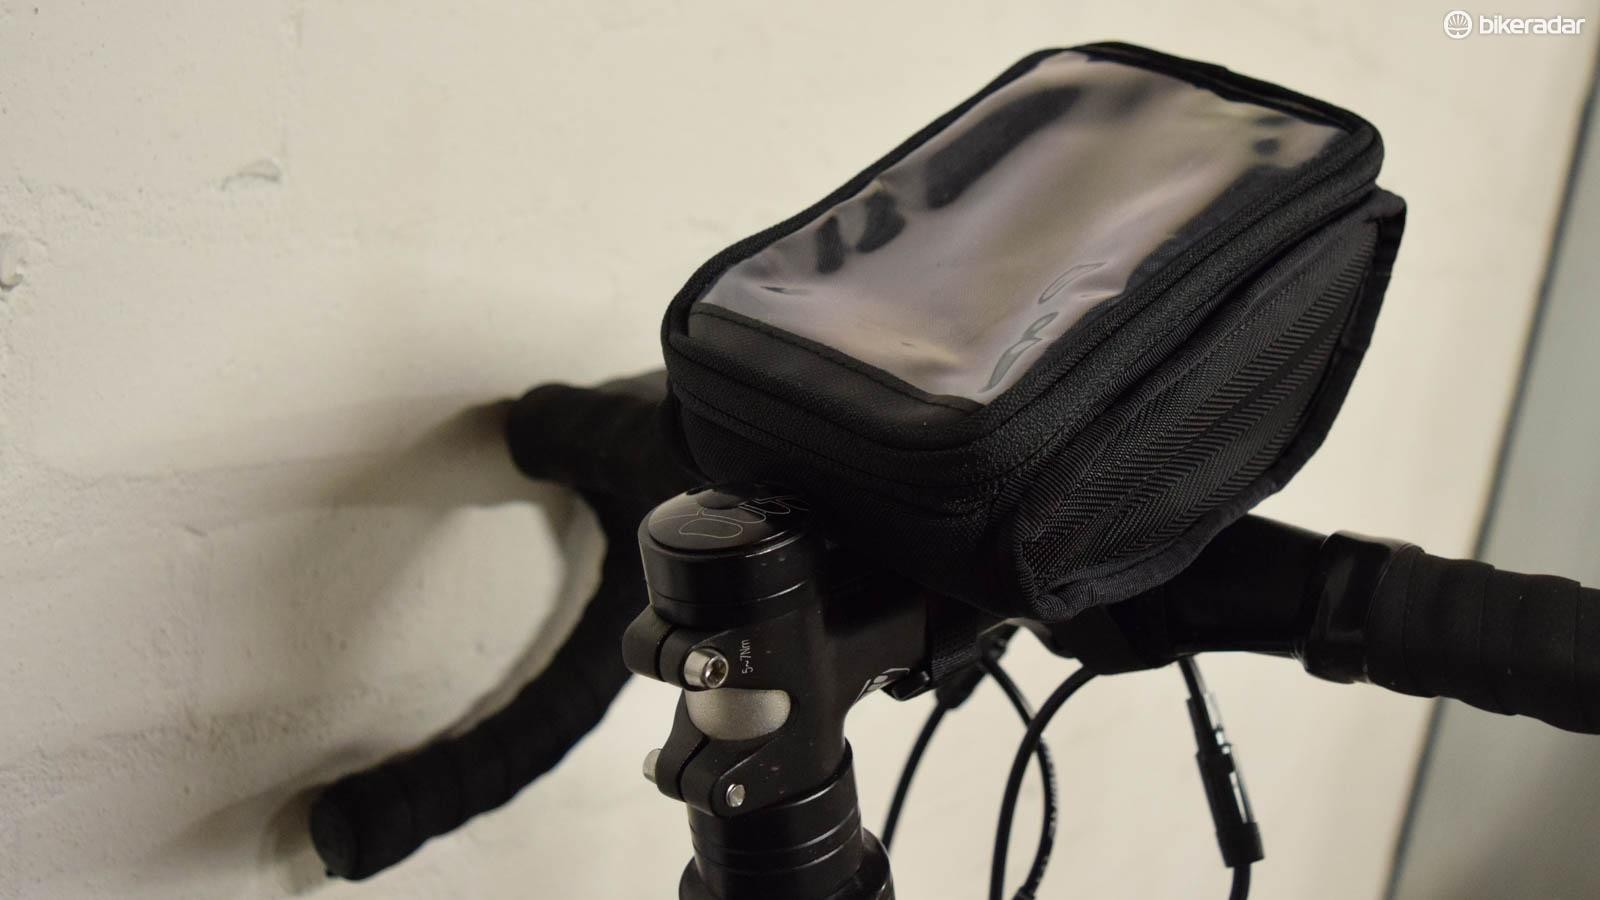 Birzman's Zyklop Navigator II fits an iPhone 6 and lots more